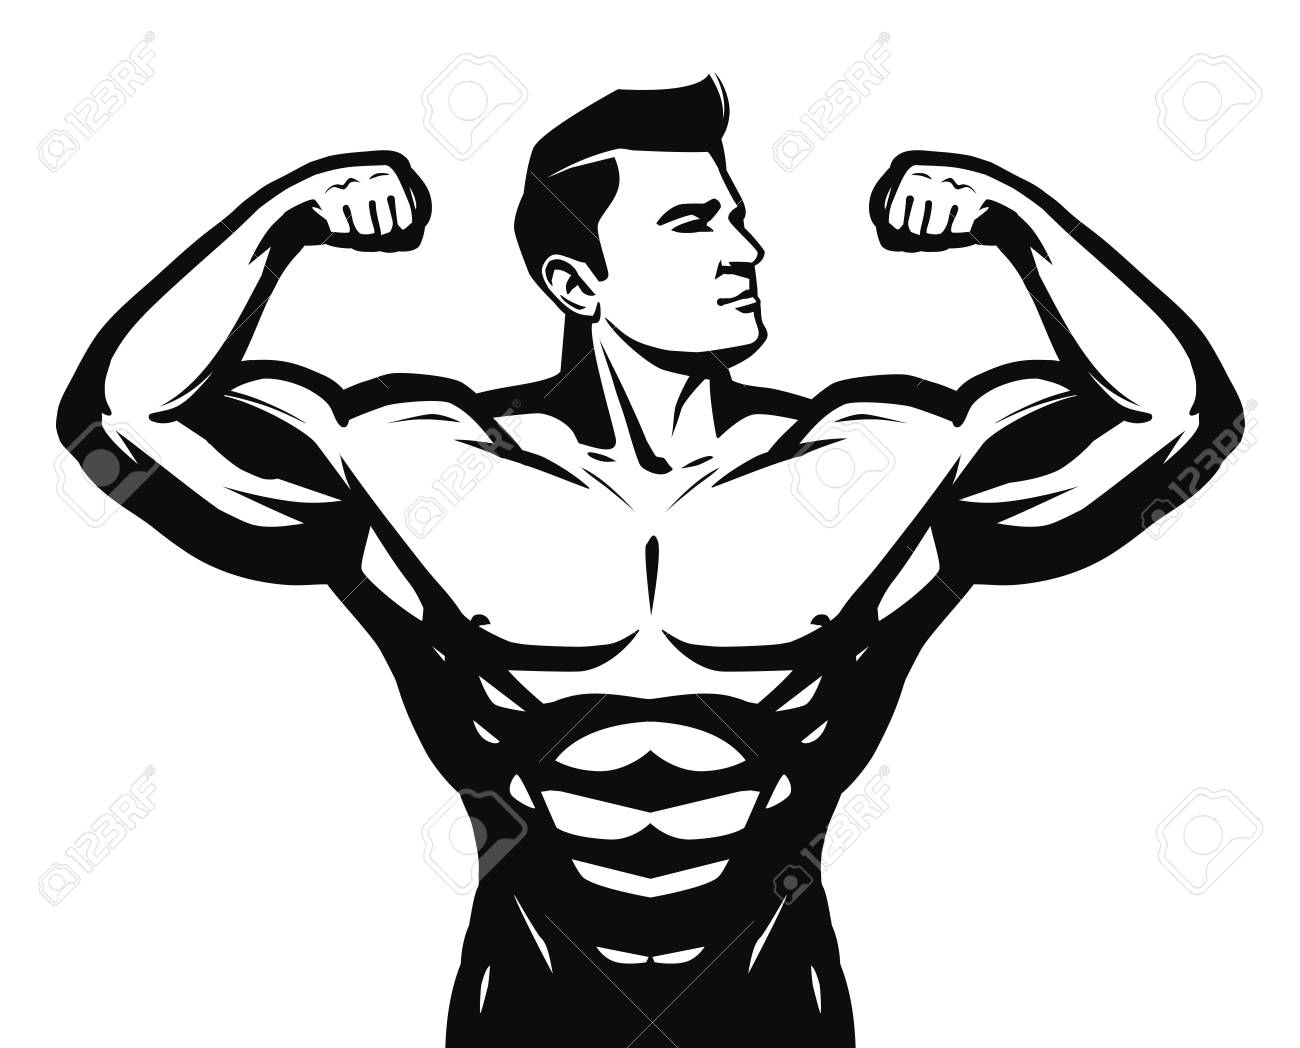 Strong People Clipart.